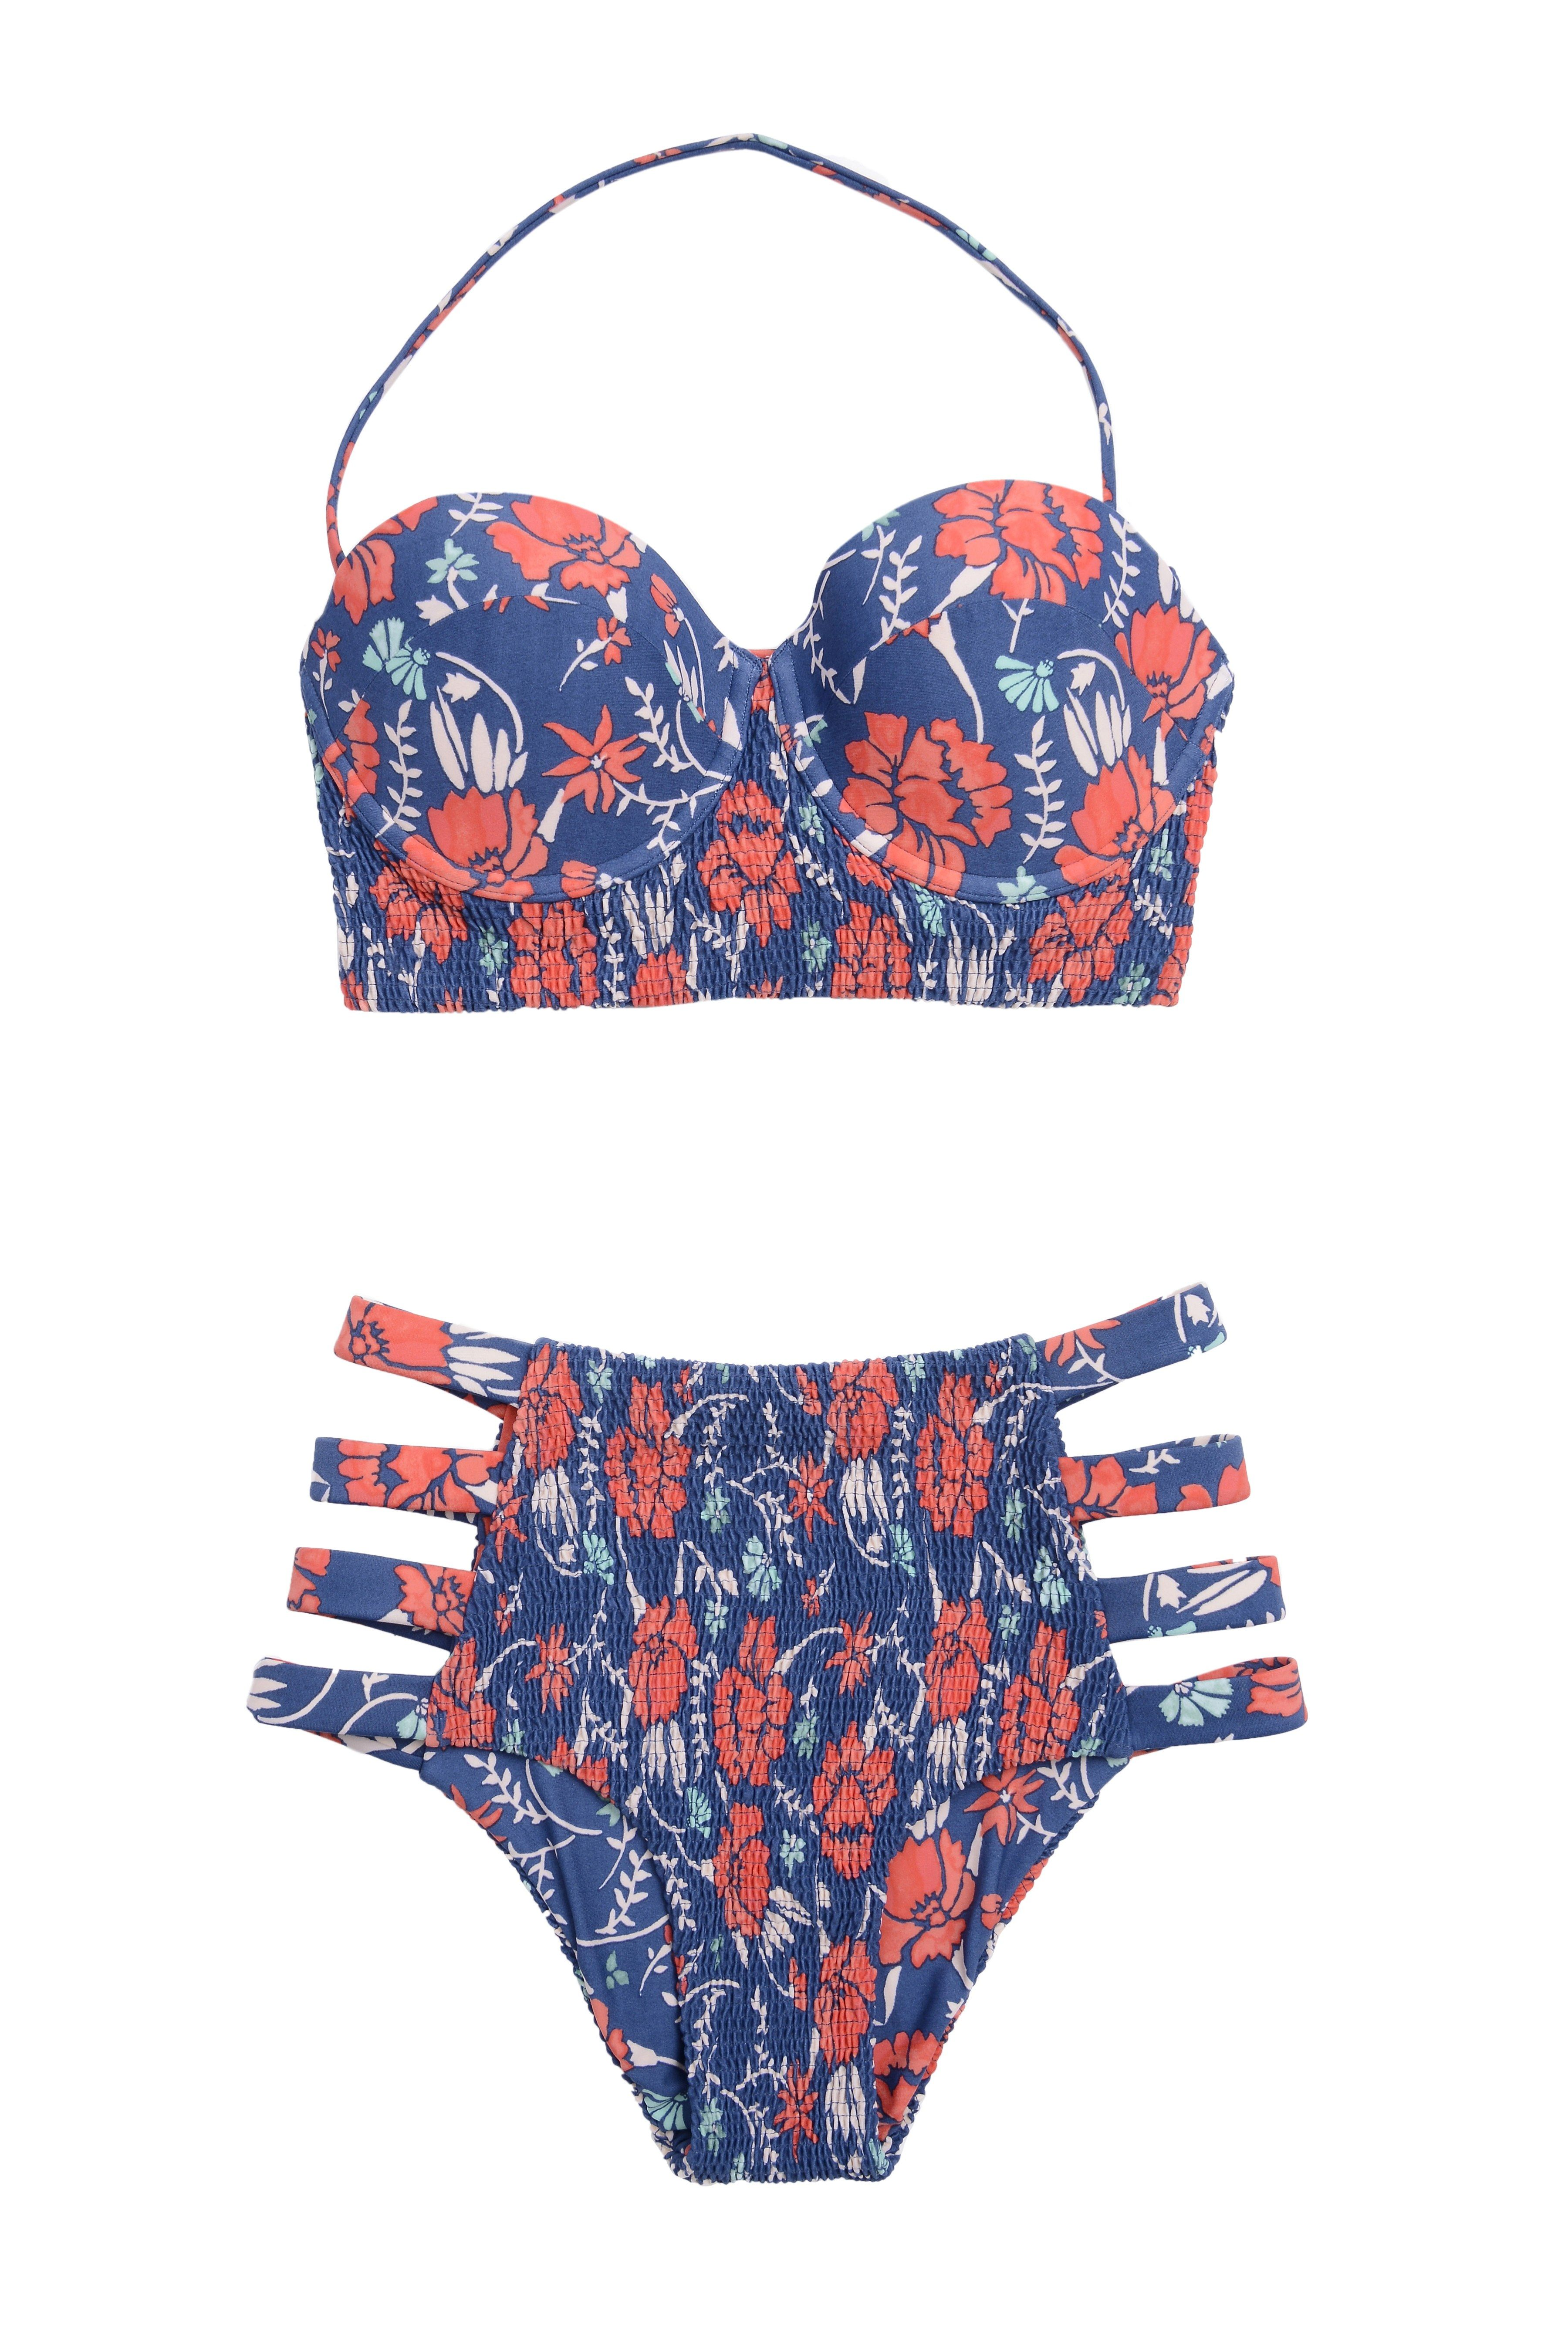 70a171bc01eda 20 Cute Ways to Cover Up at the Beach This Summer